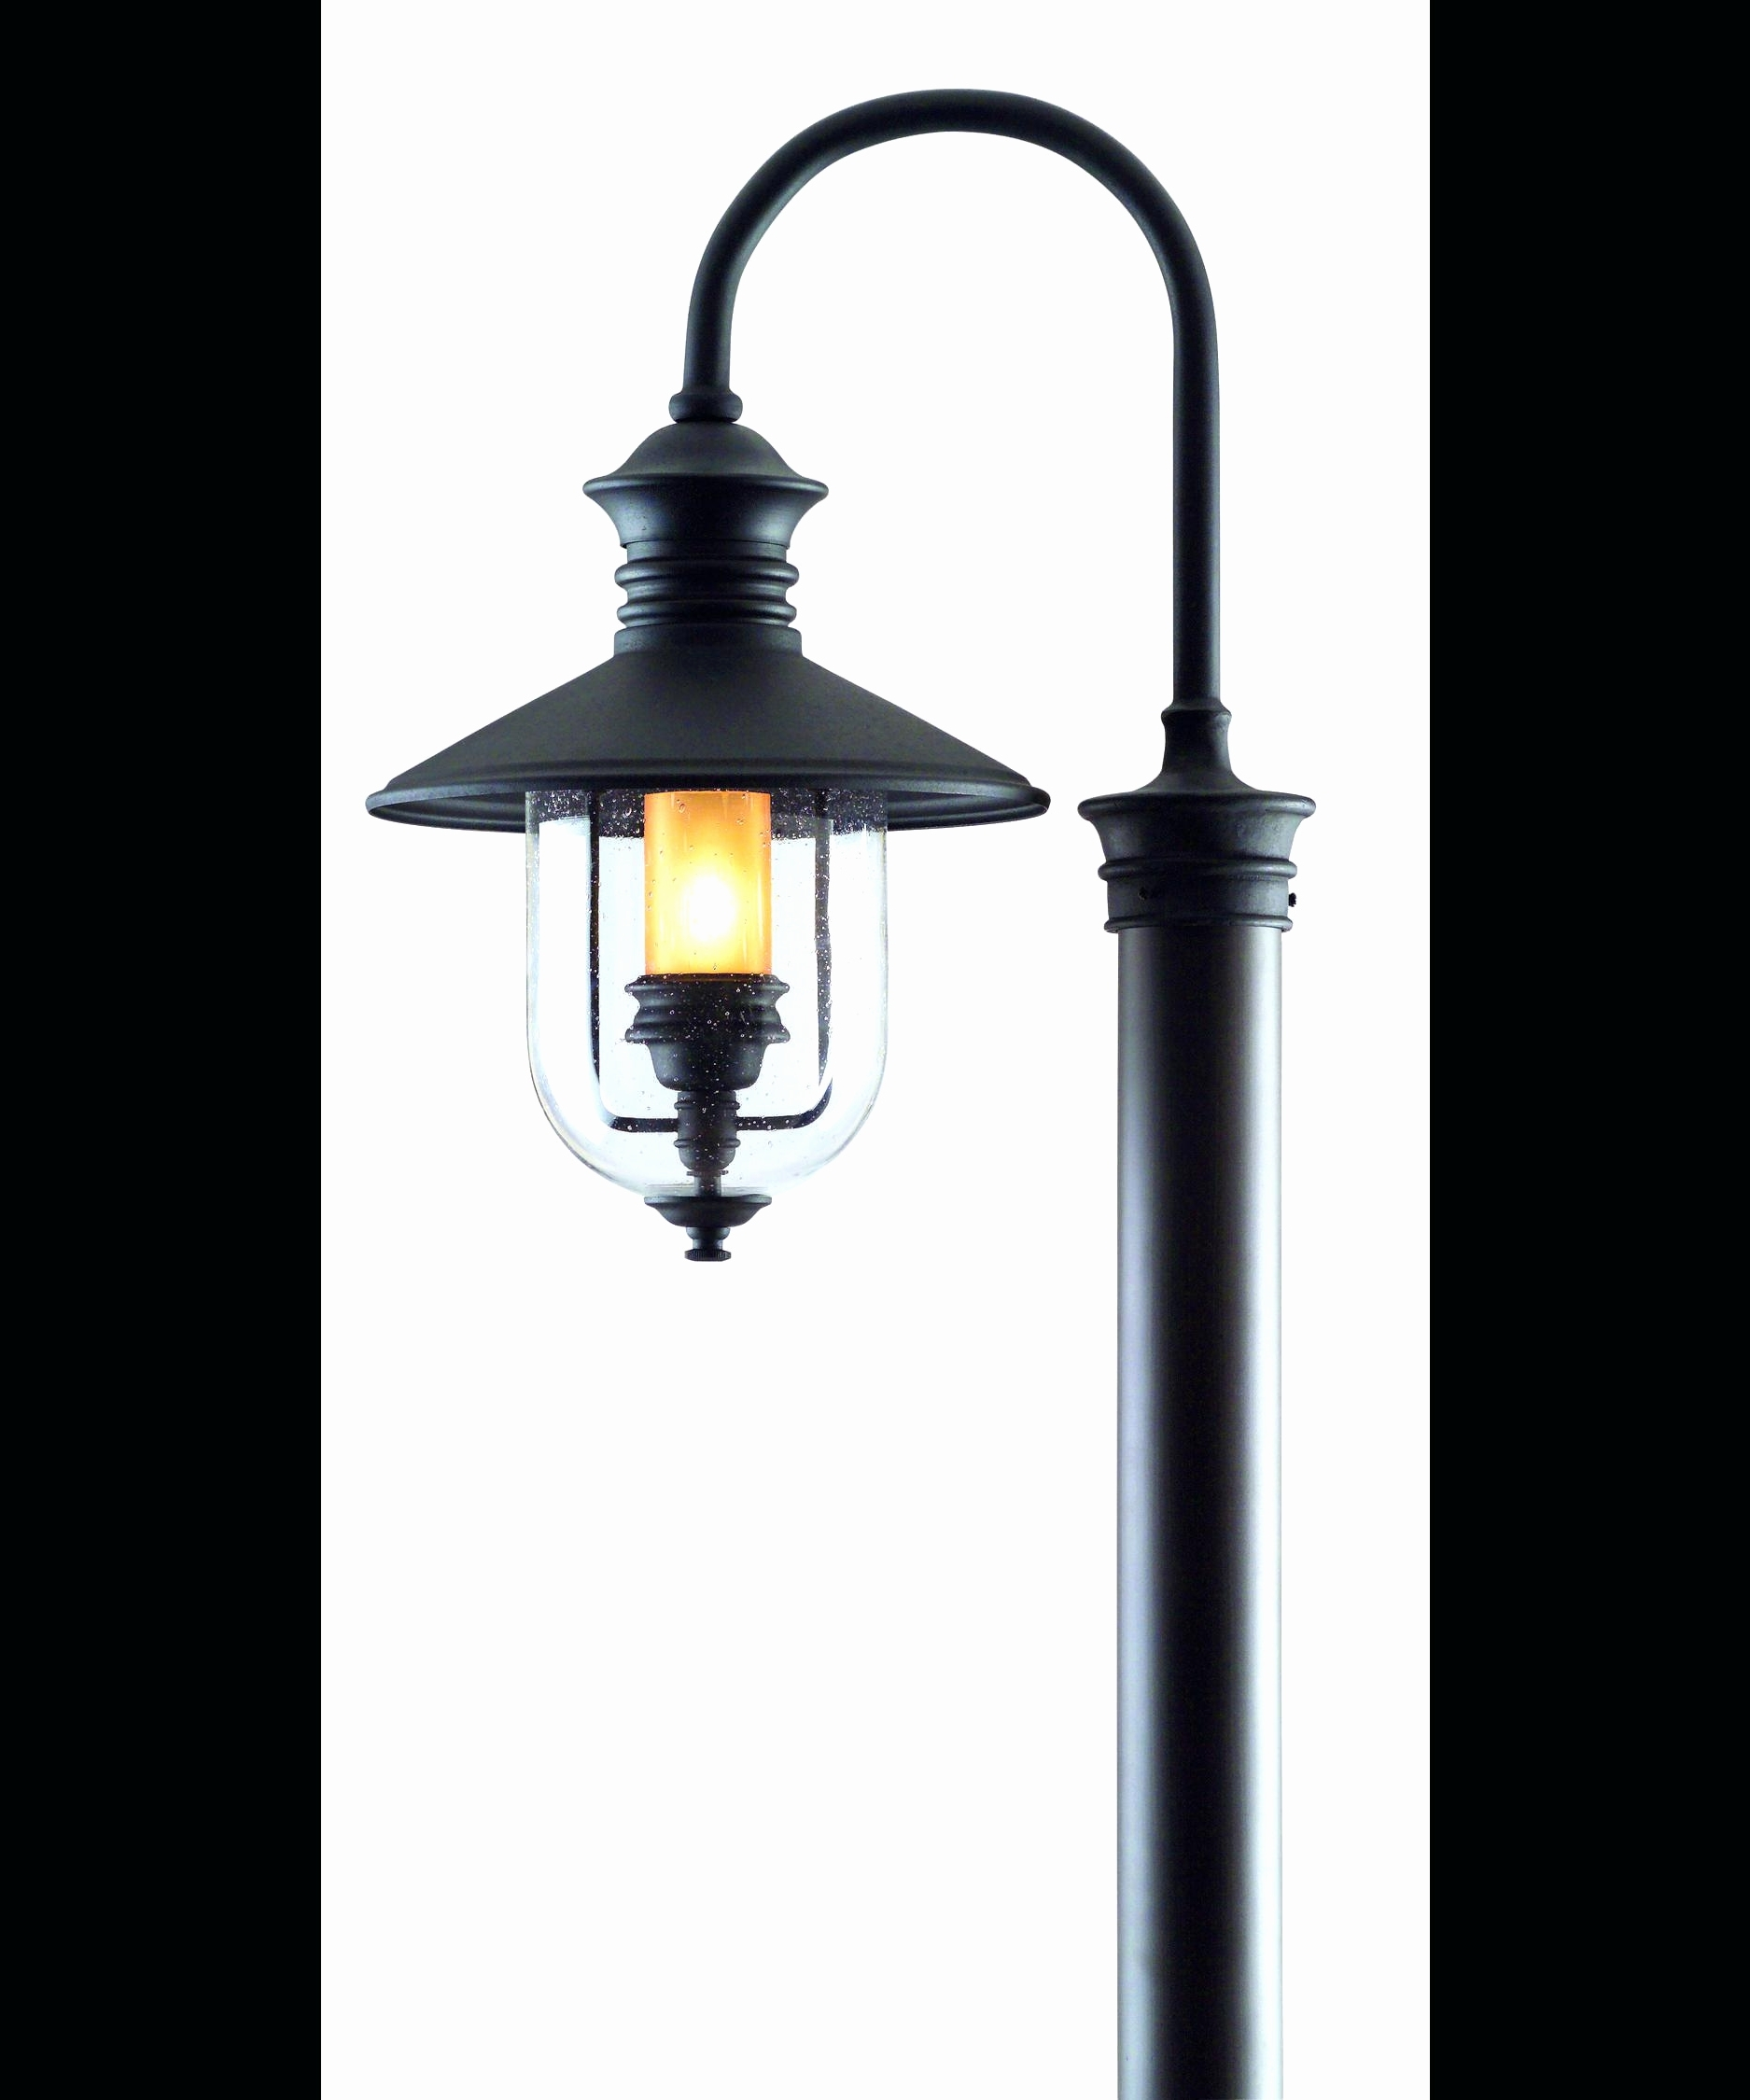 Modern Motion Sensor Outdoor Lighting Awesome Outdoor Lights Posts Throughout Trendy Outdoor Lanterns For Posts (View 4 of 20)